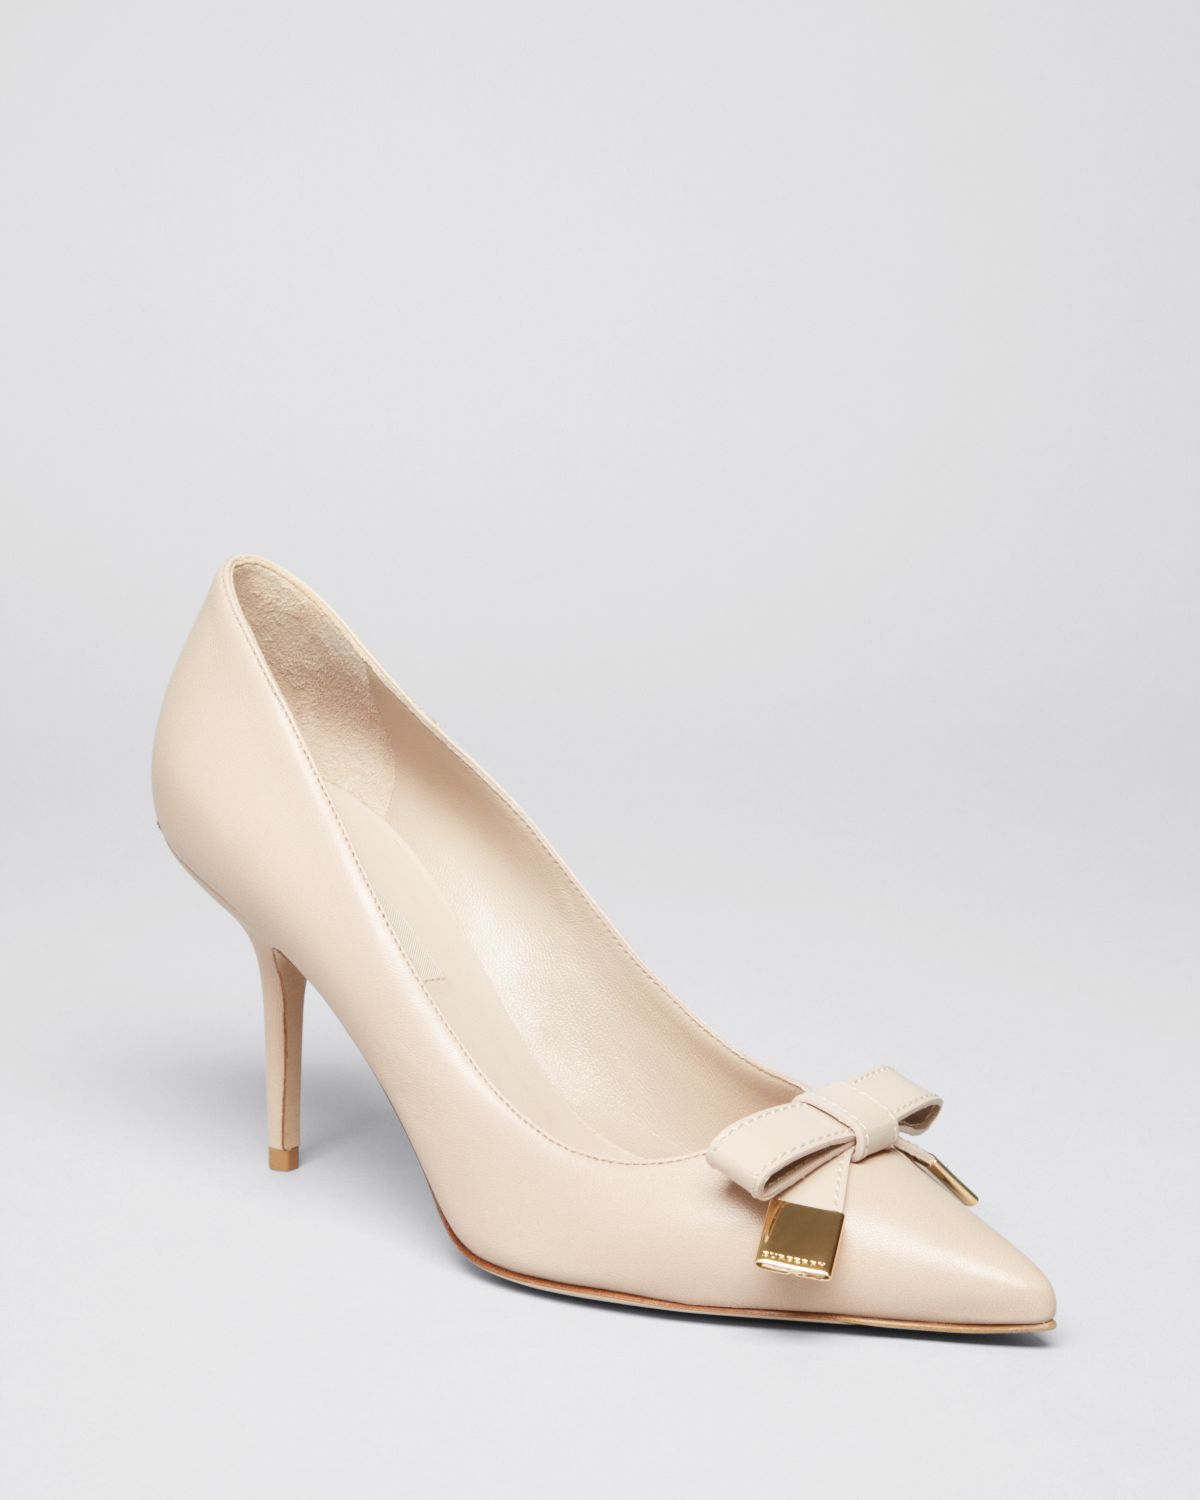 burberry pointed toe pumps rayness high heel in beige antique taupe lyst. Black Bedroom Furniture Sets. Home Design Ideas